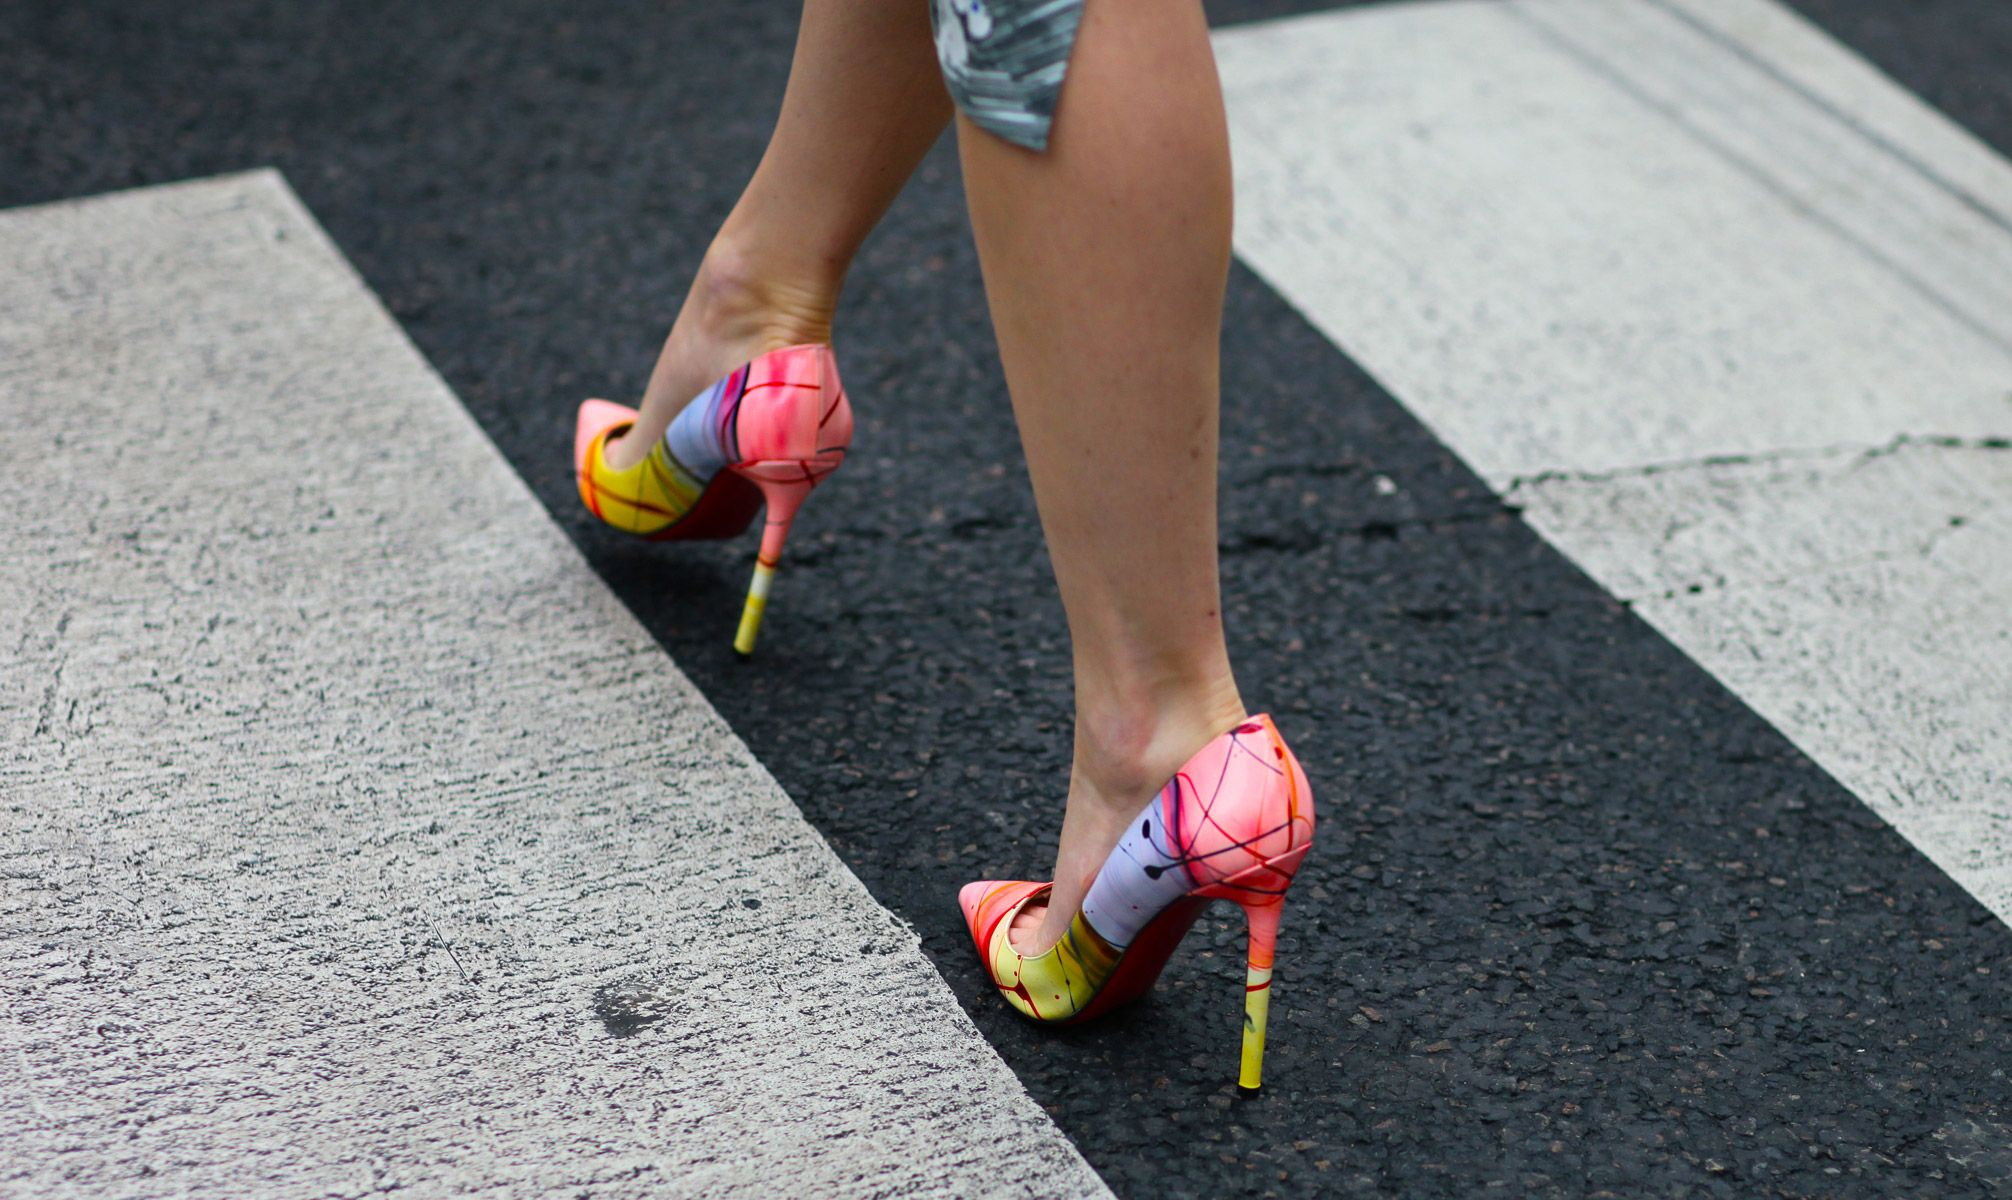 Christian Louboutin pumps.  No other way to say it...these shoes ROCK.